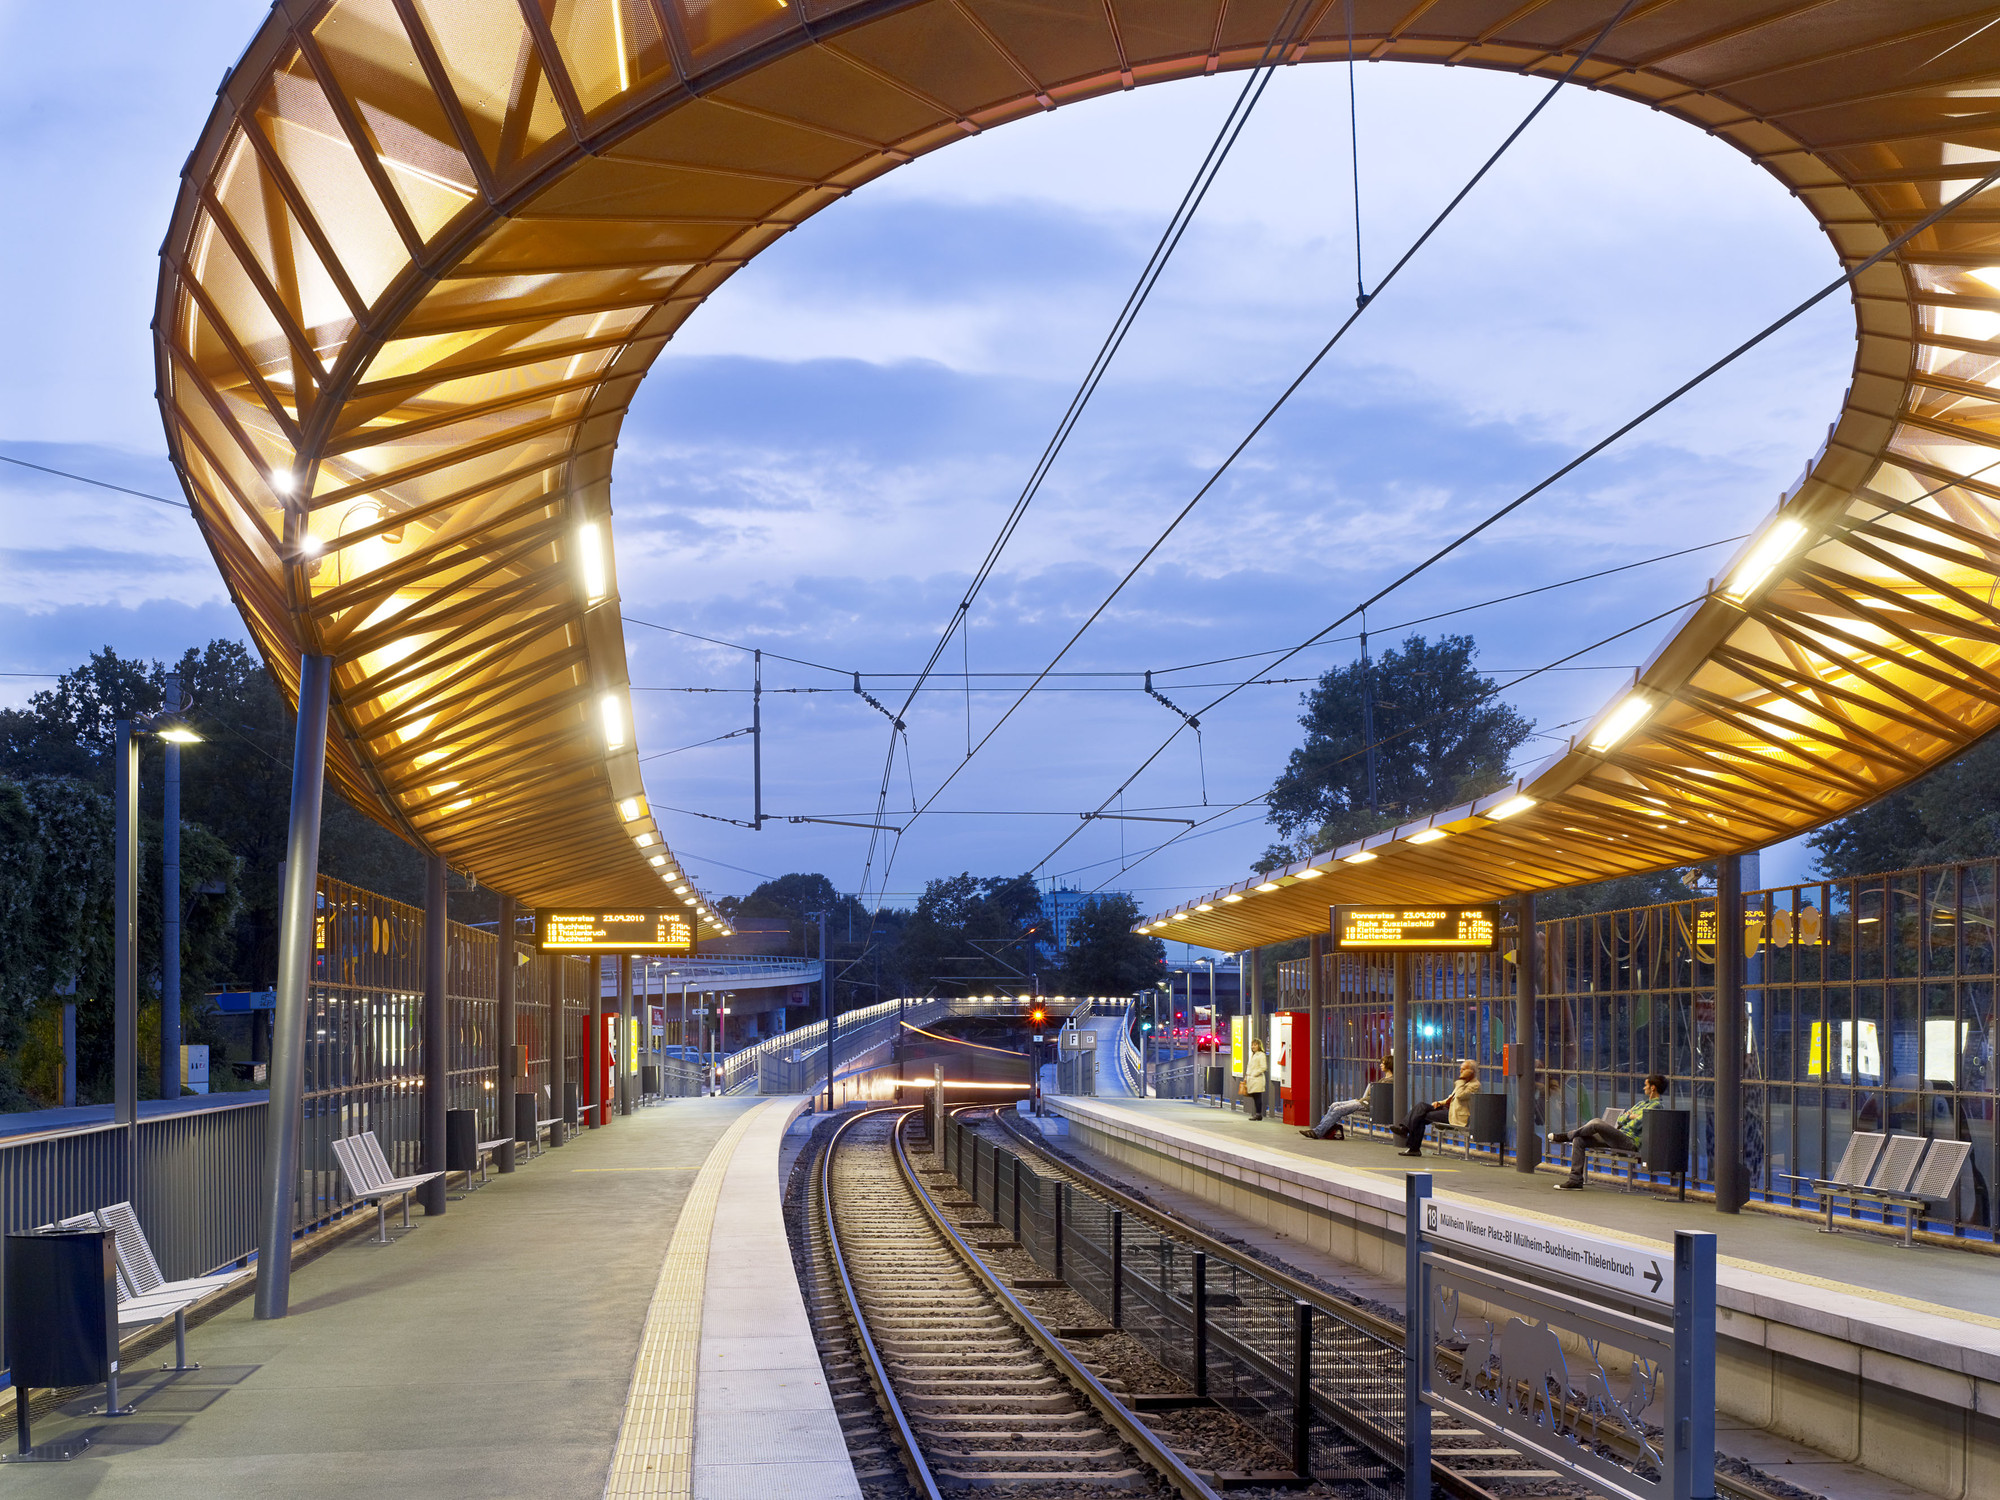 Zoo/Flora Rail Station / RÜBSAMEN+PARTNER, Courtesy of RÜBSAMEN+PARTNER